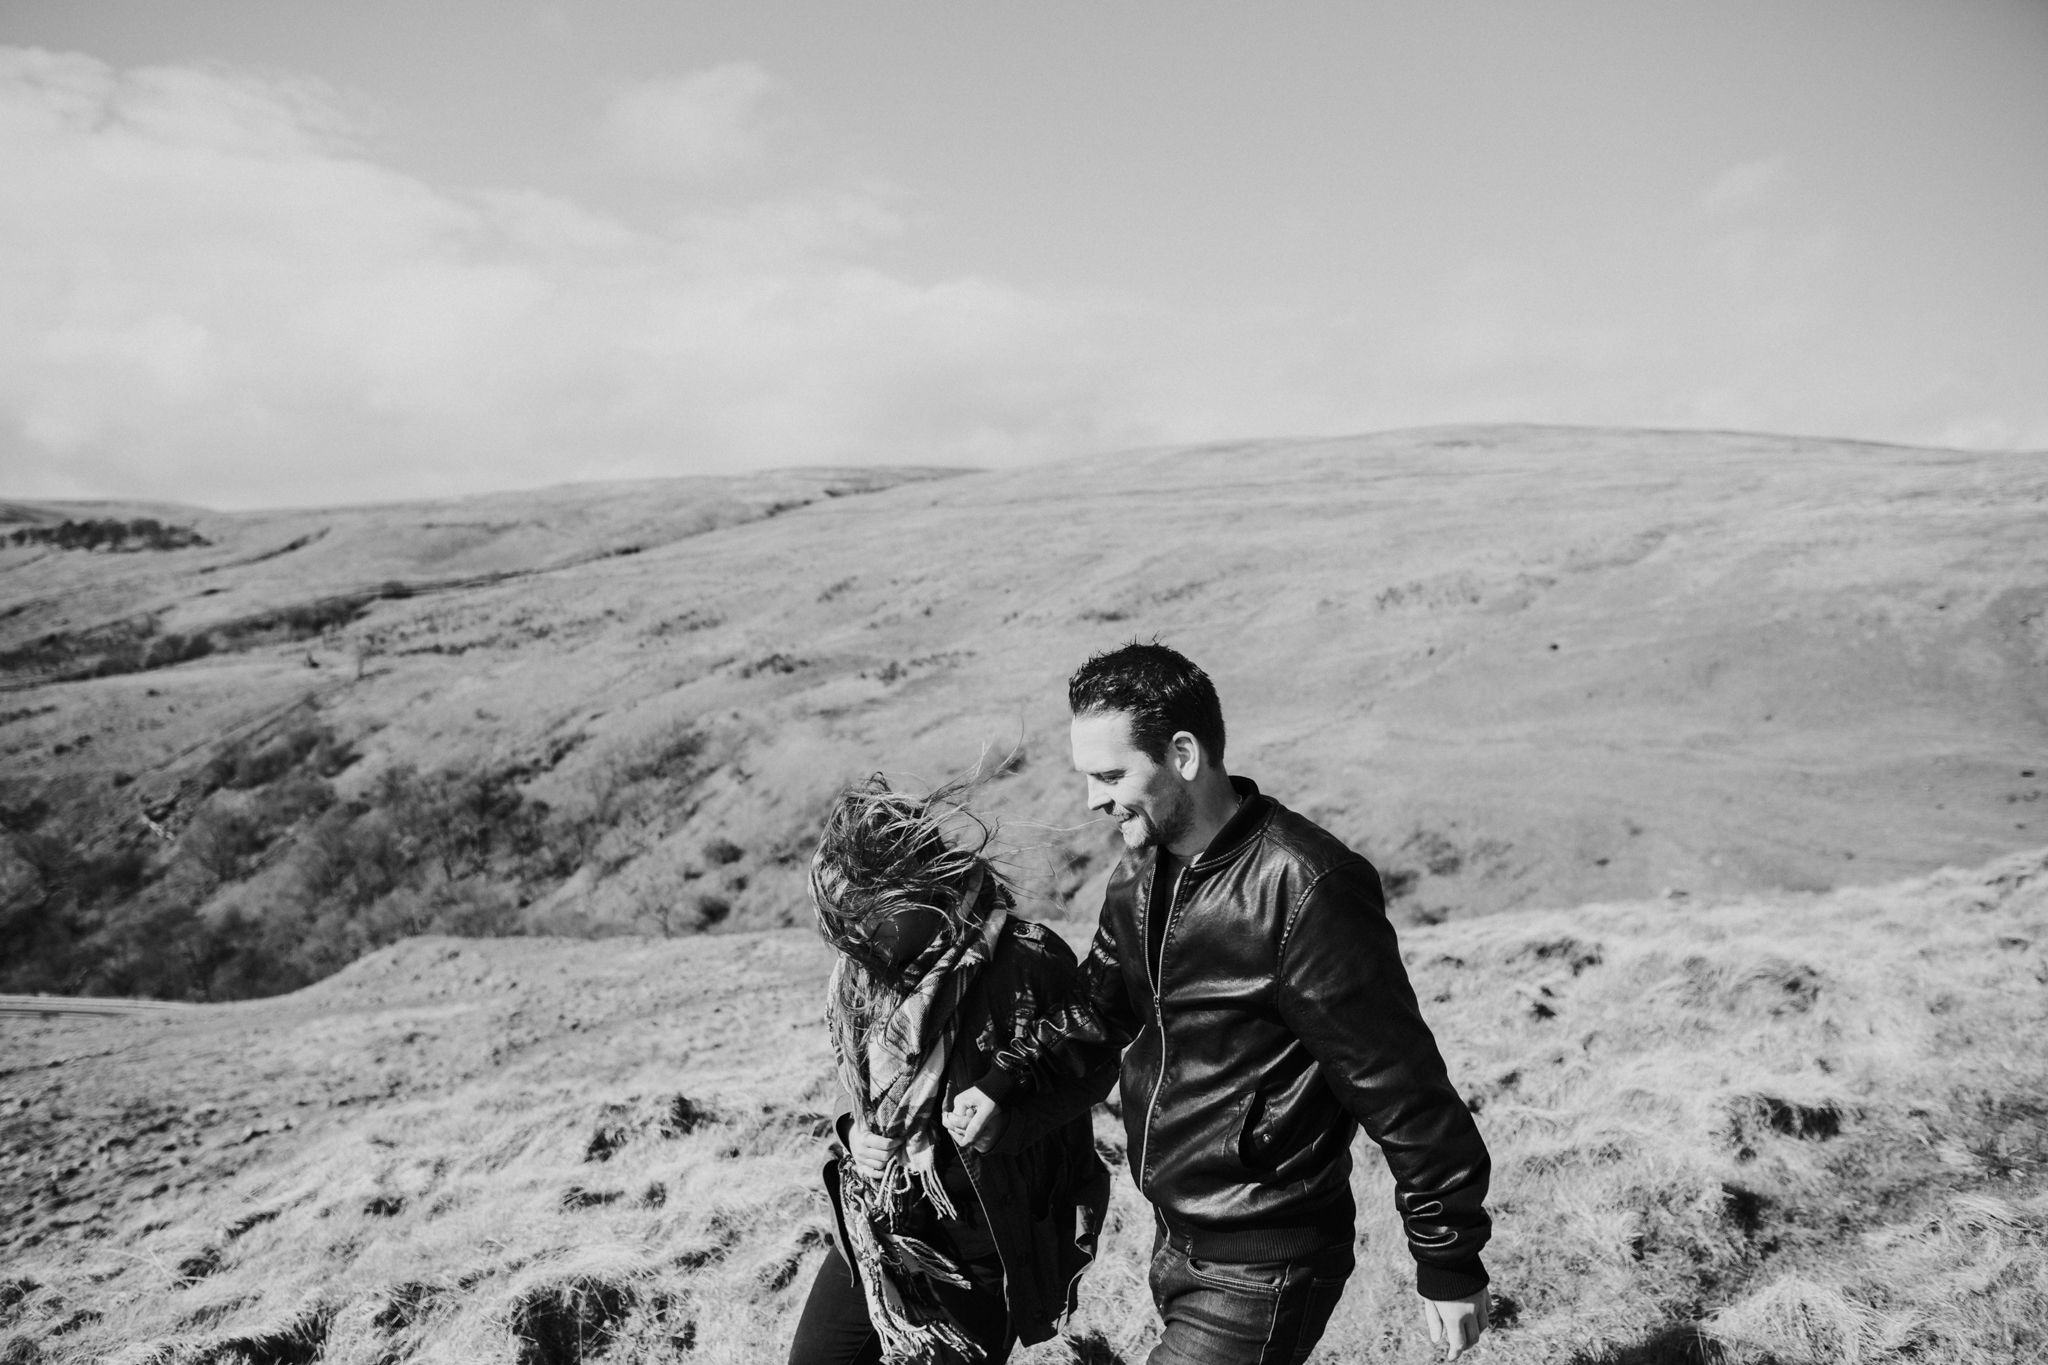 The happy couple is walking together on the top of the hills in Scotland